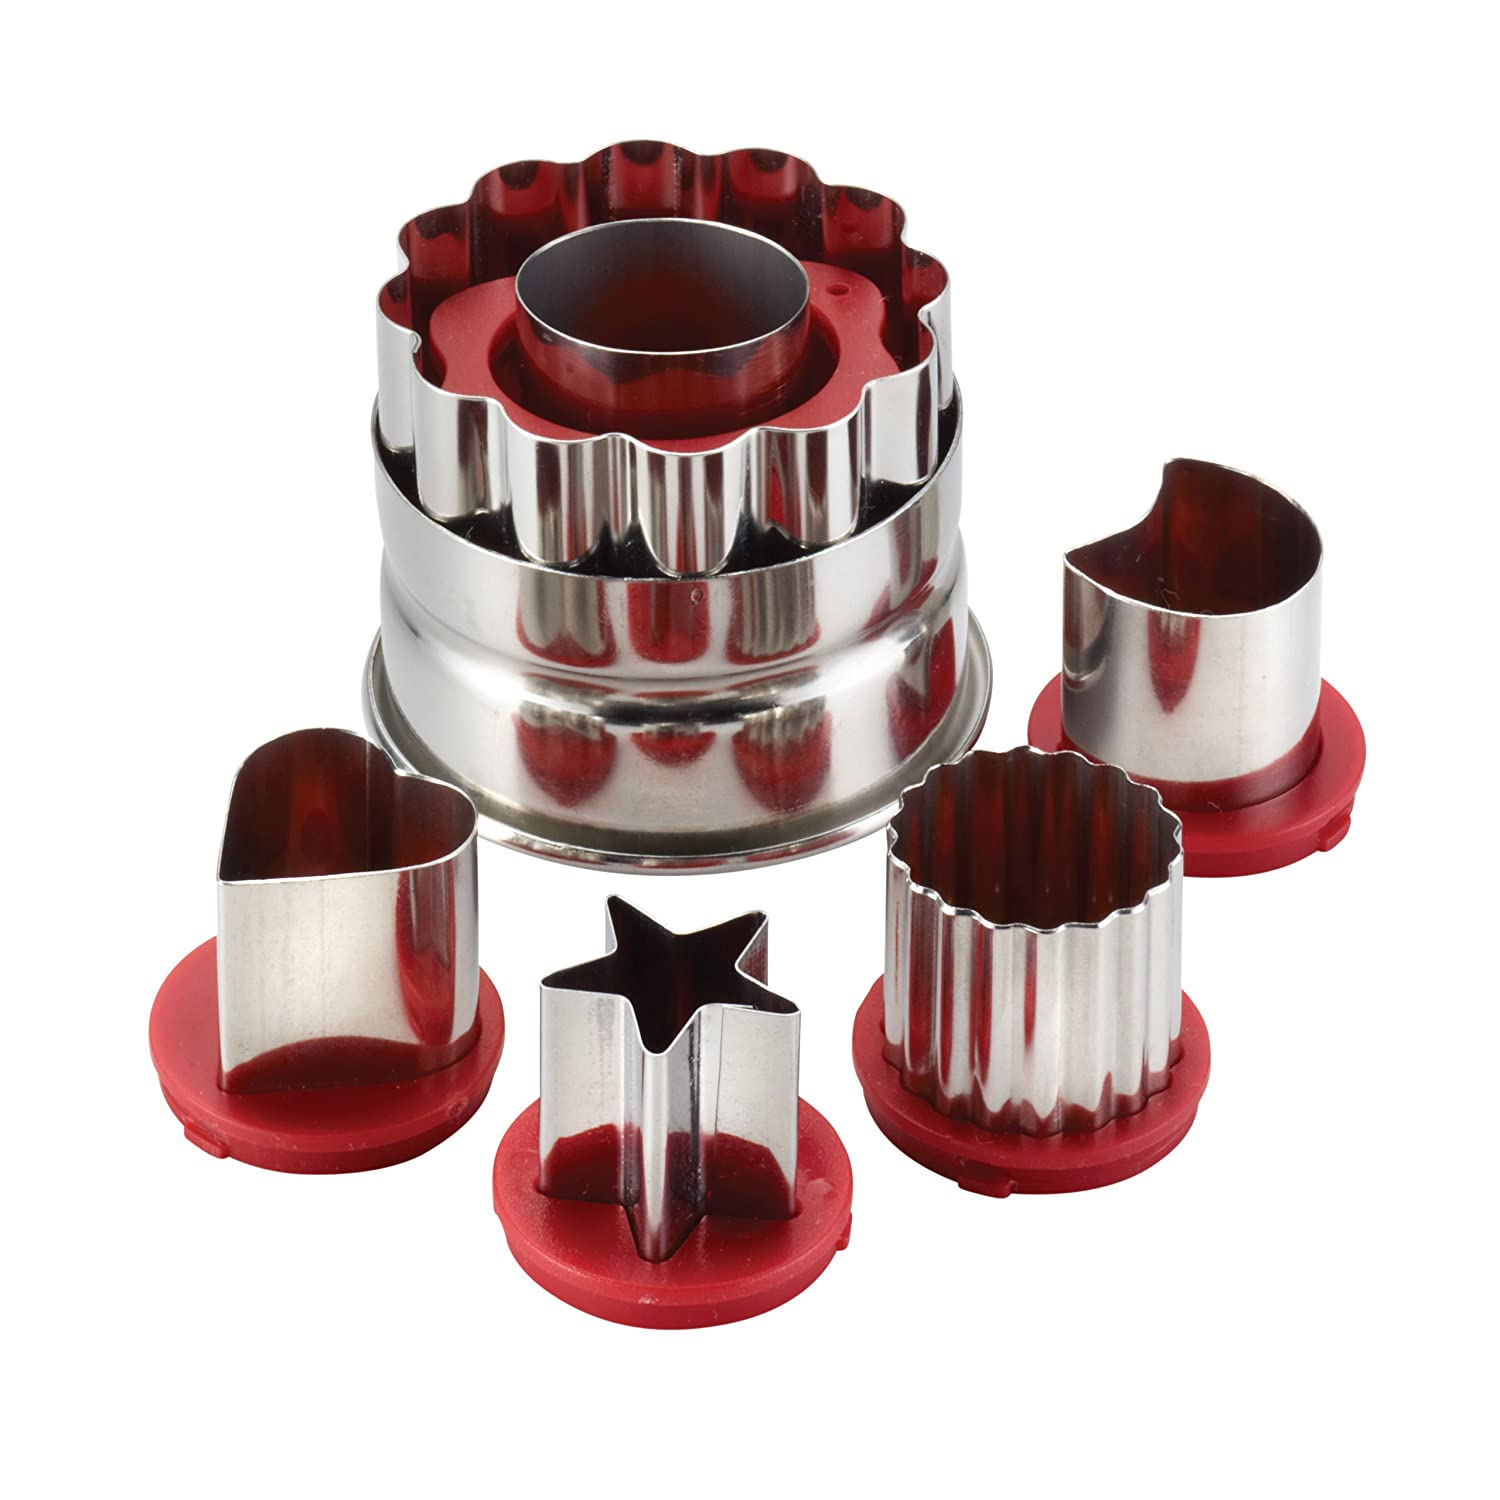 Cake Boss Stainless Steel Baking Cutters for Holiday Linzer Set , 6-Piece Meyer Group Ltd 55512